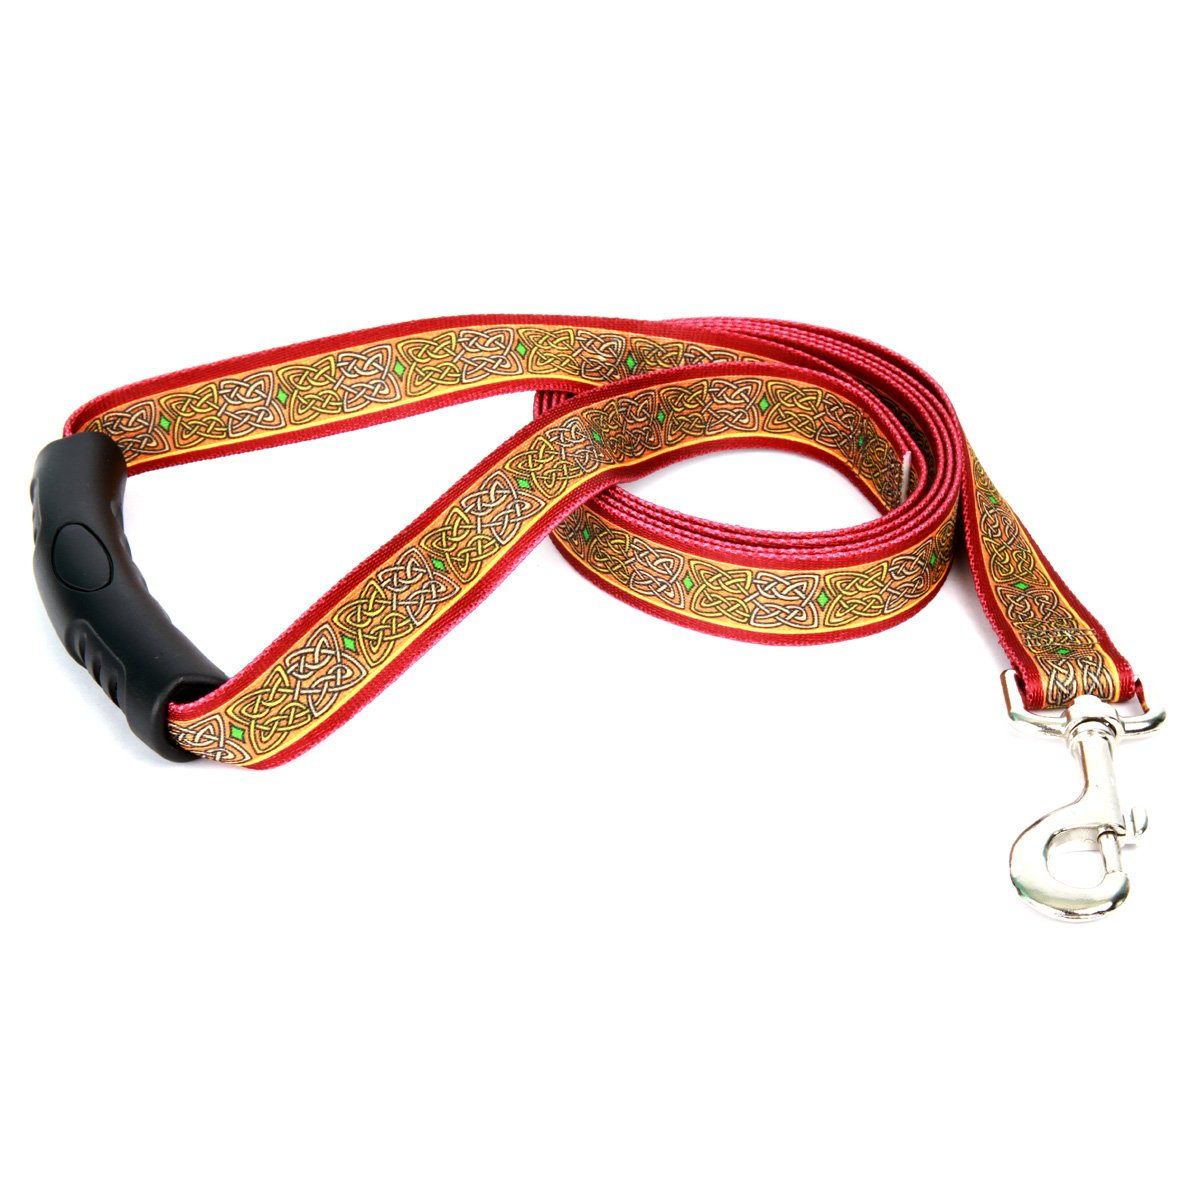 Yellow Dog Design Celtic Ez-Grip Dog Leash with Comfort Handle 1'' Wide and 5' (60'') Long, Large